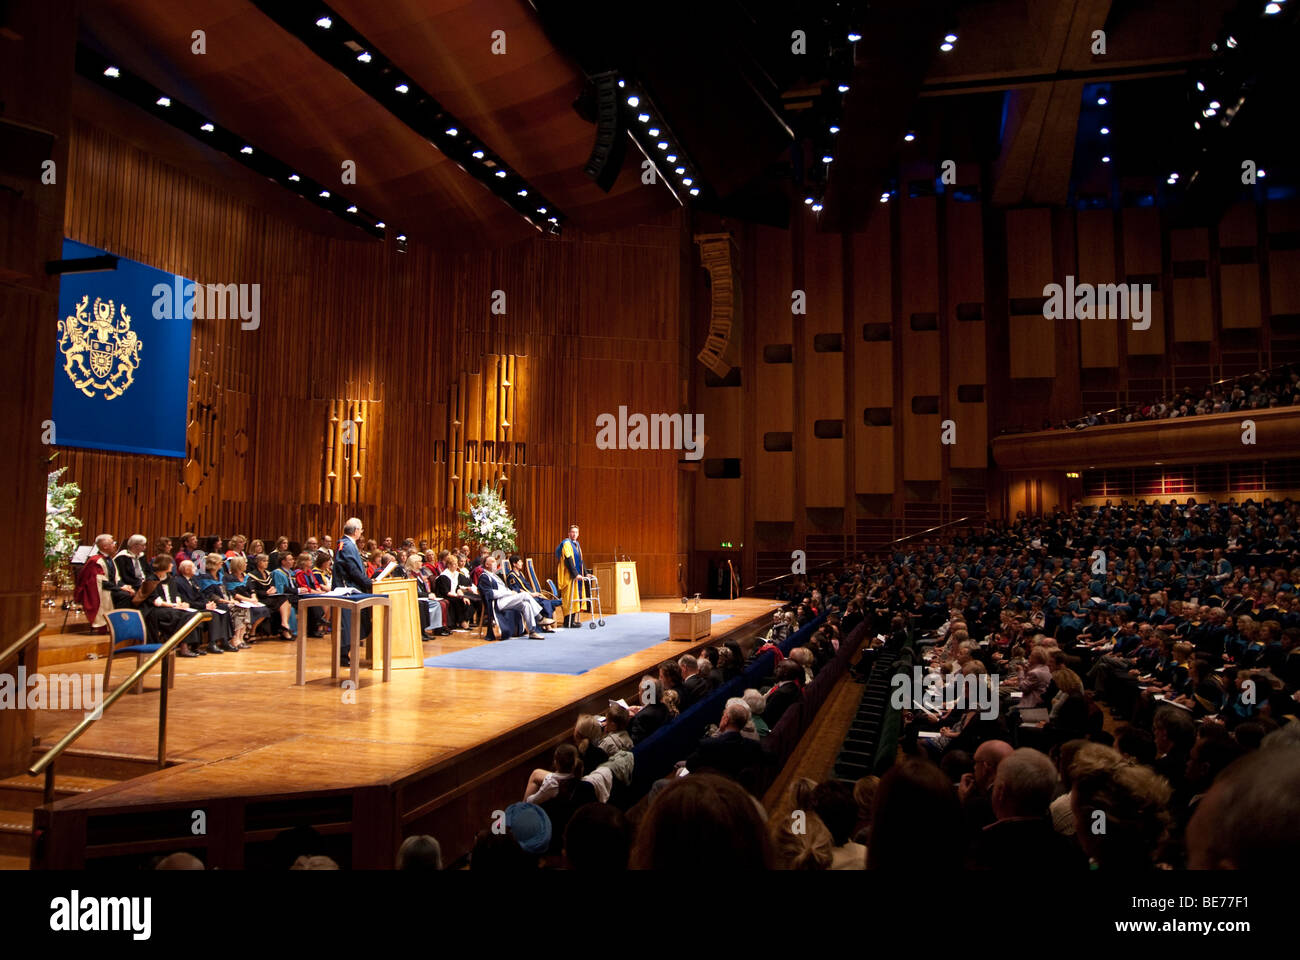 Conferment of Honorary Degree of Doctor of the Open University on Mr Frank Gardner OBE at The Barbican Centre London - Stock Image